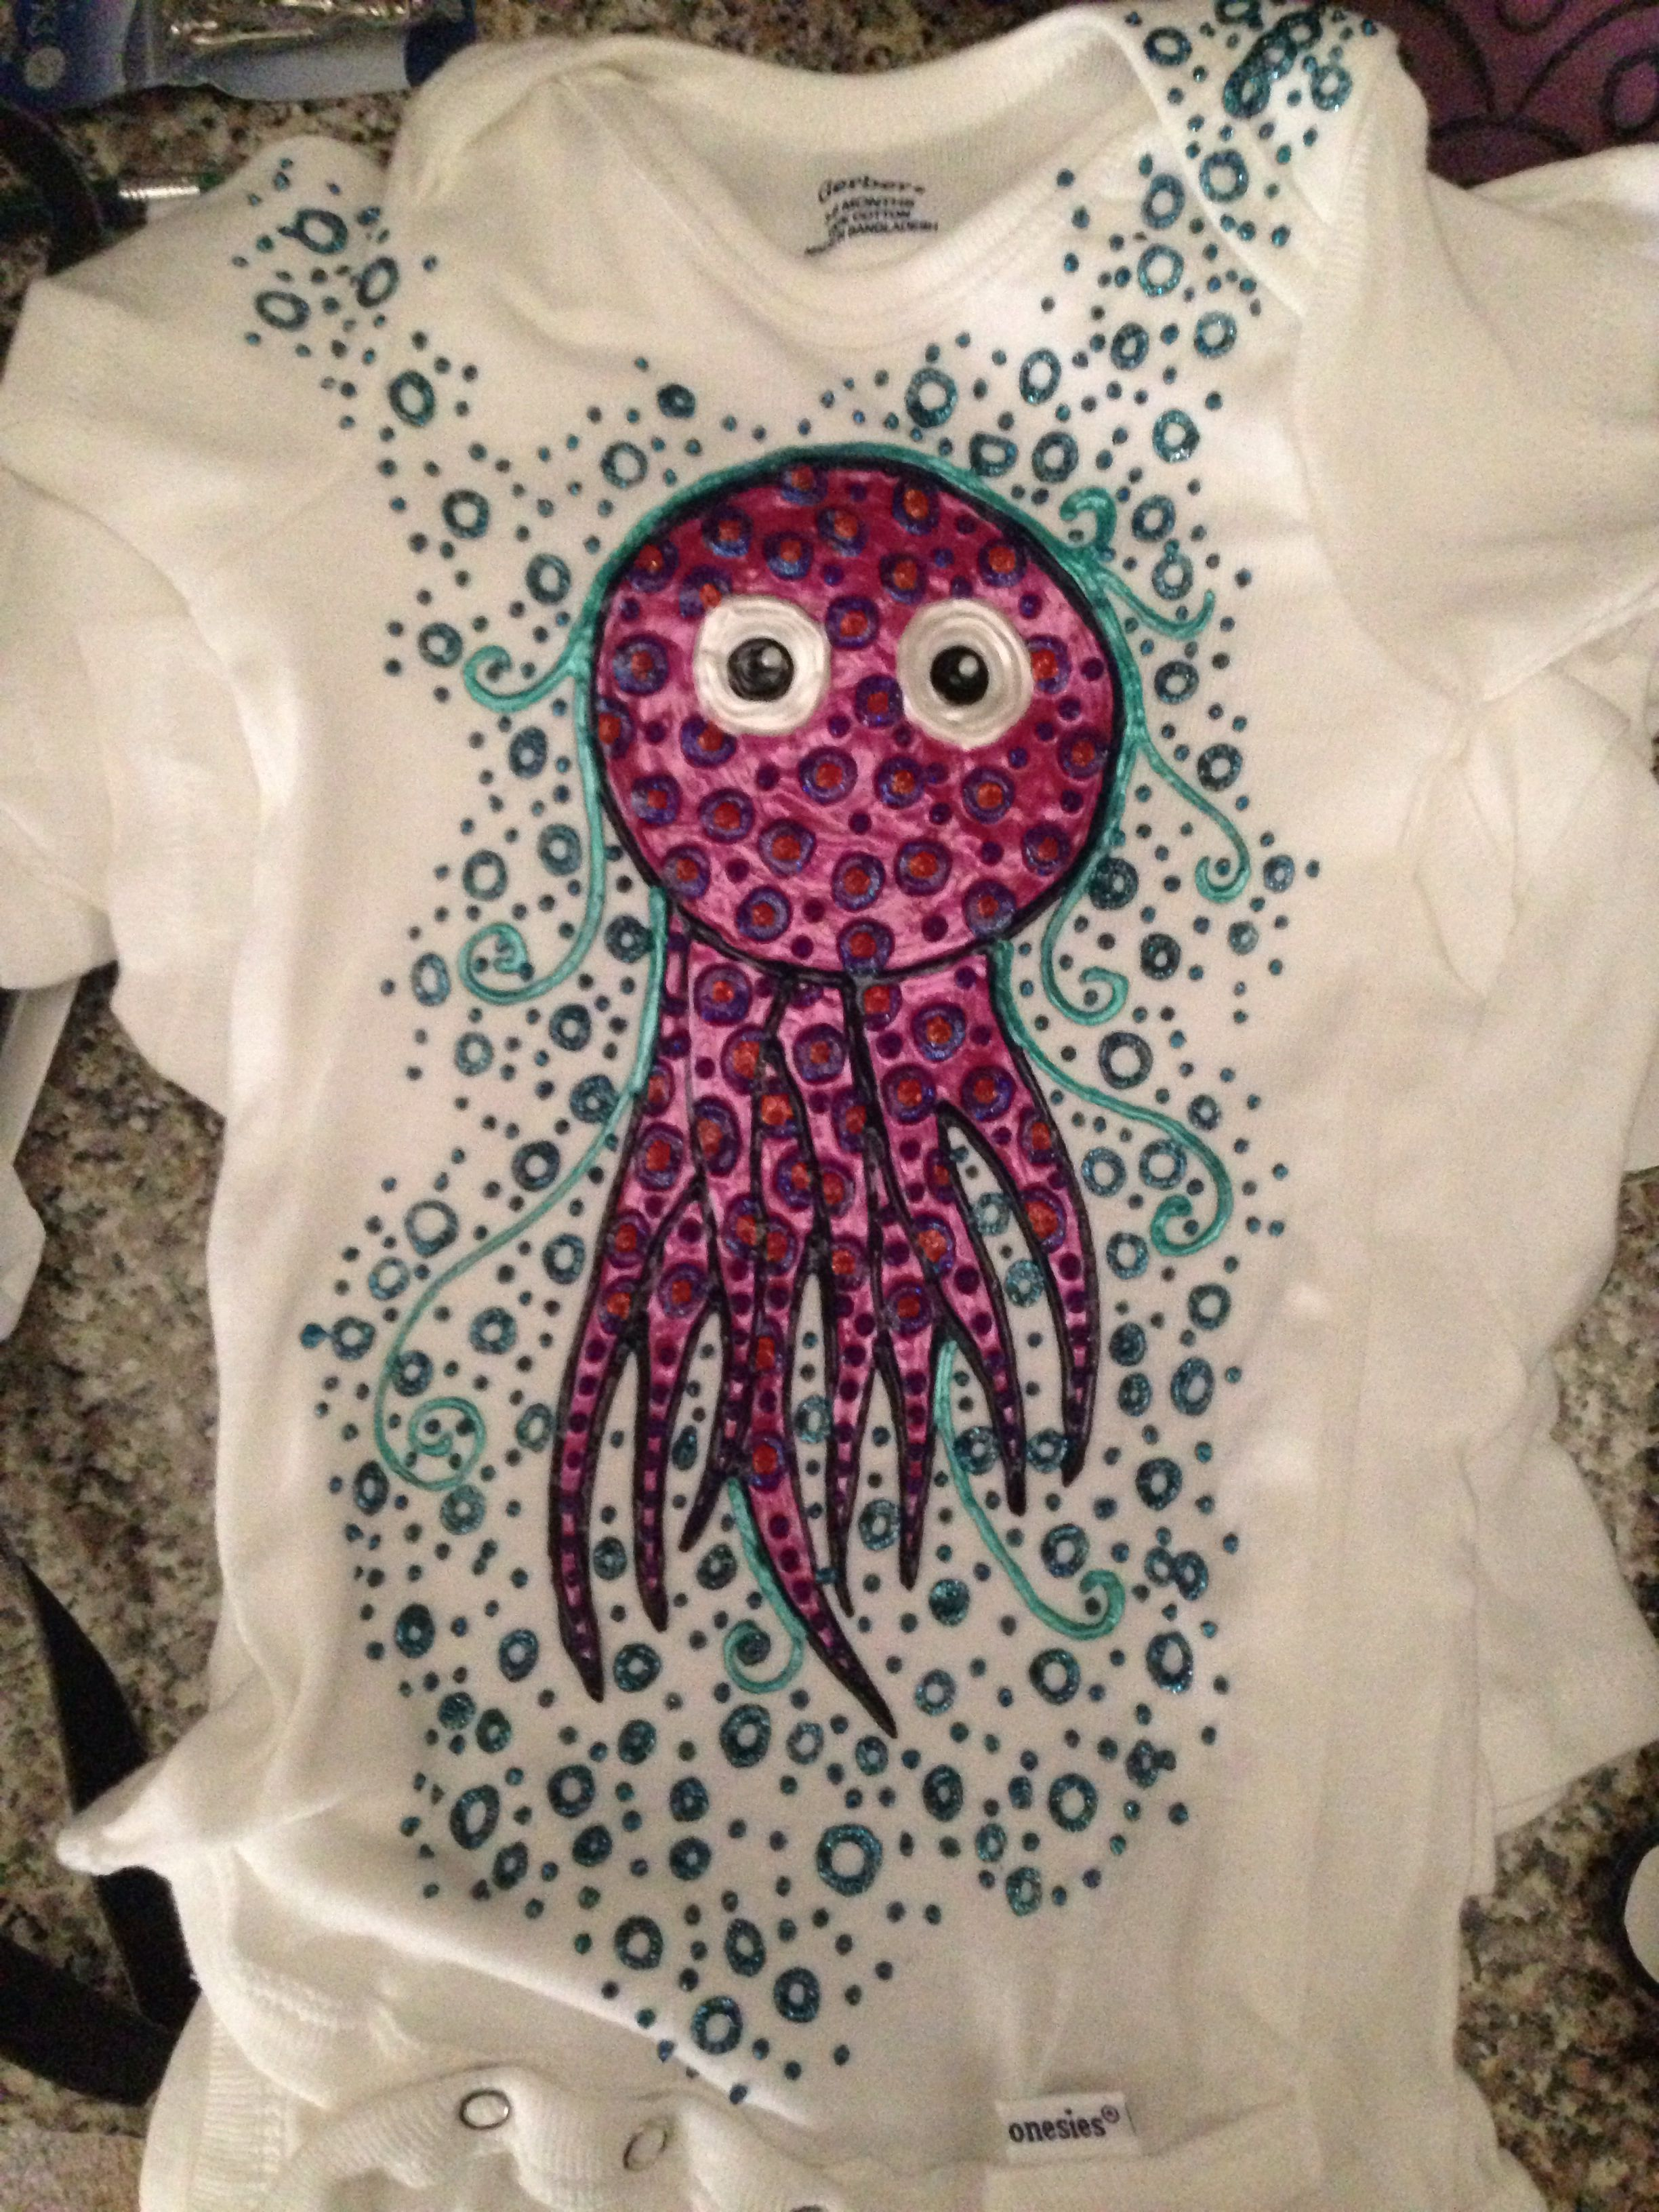 Octopus #puffypaint